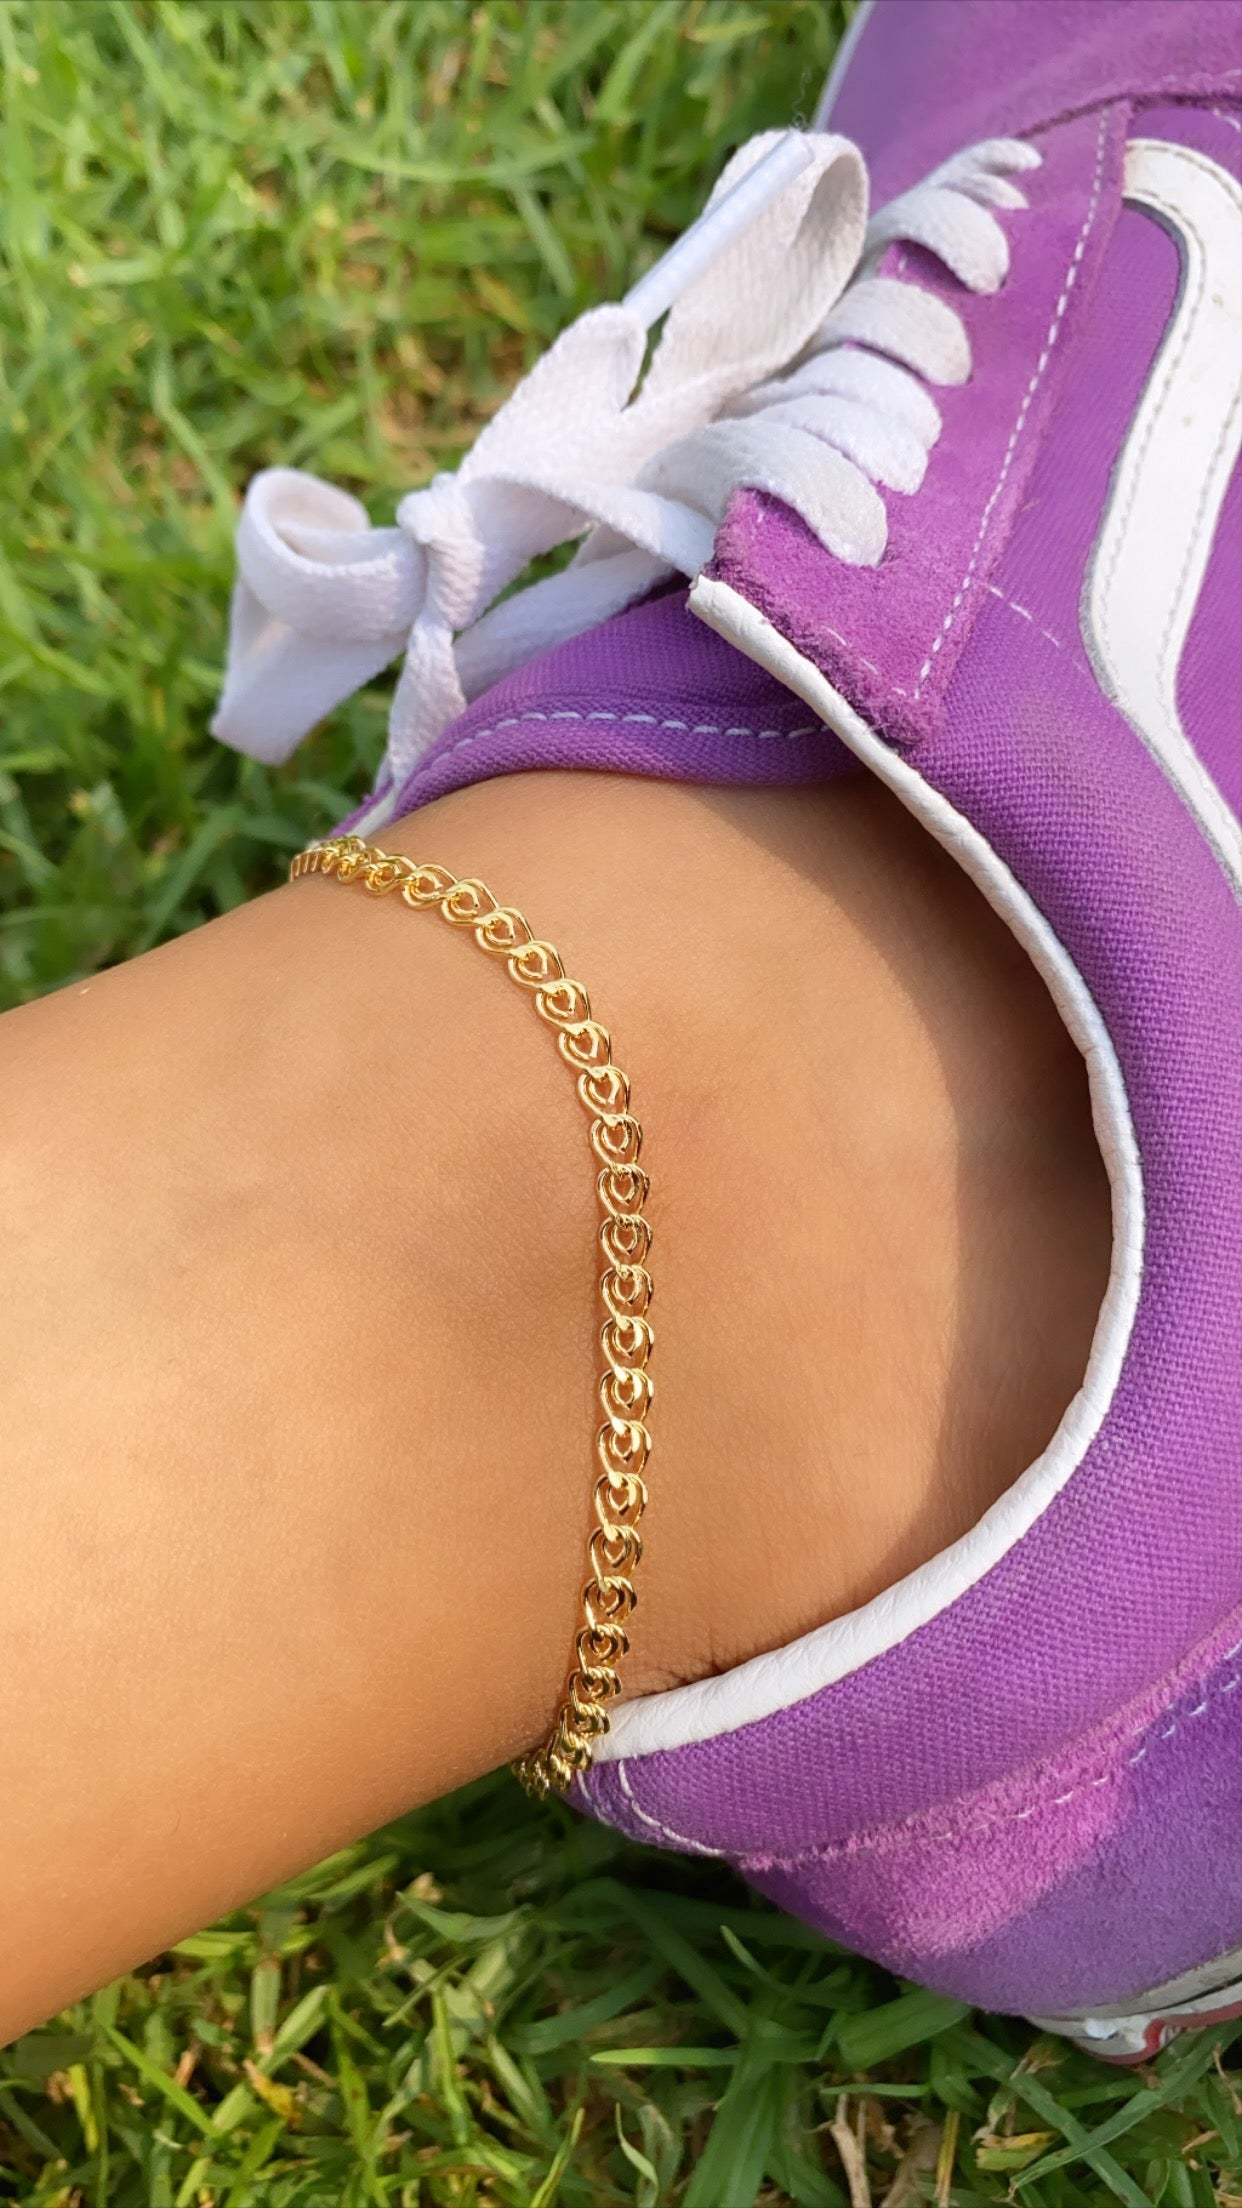 Mario anklet